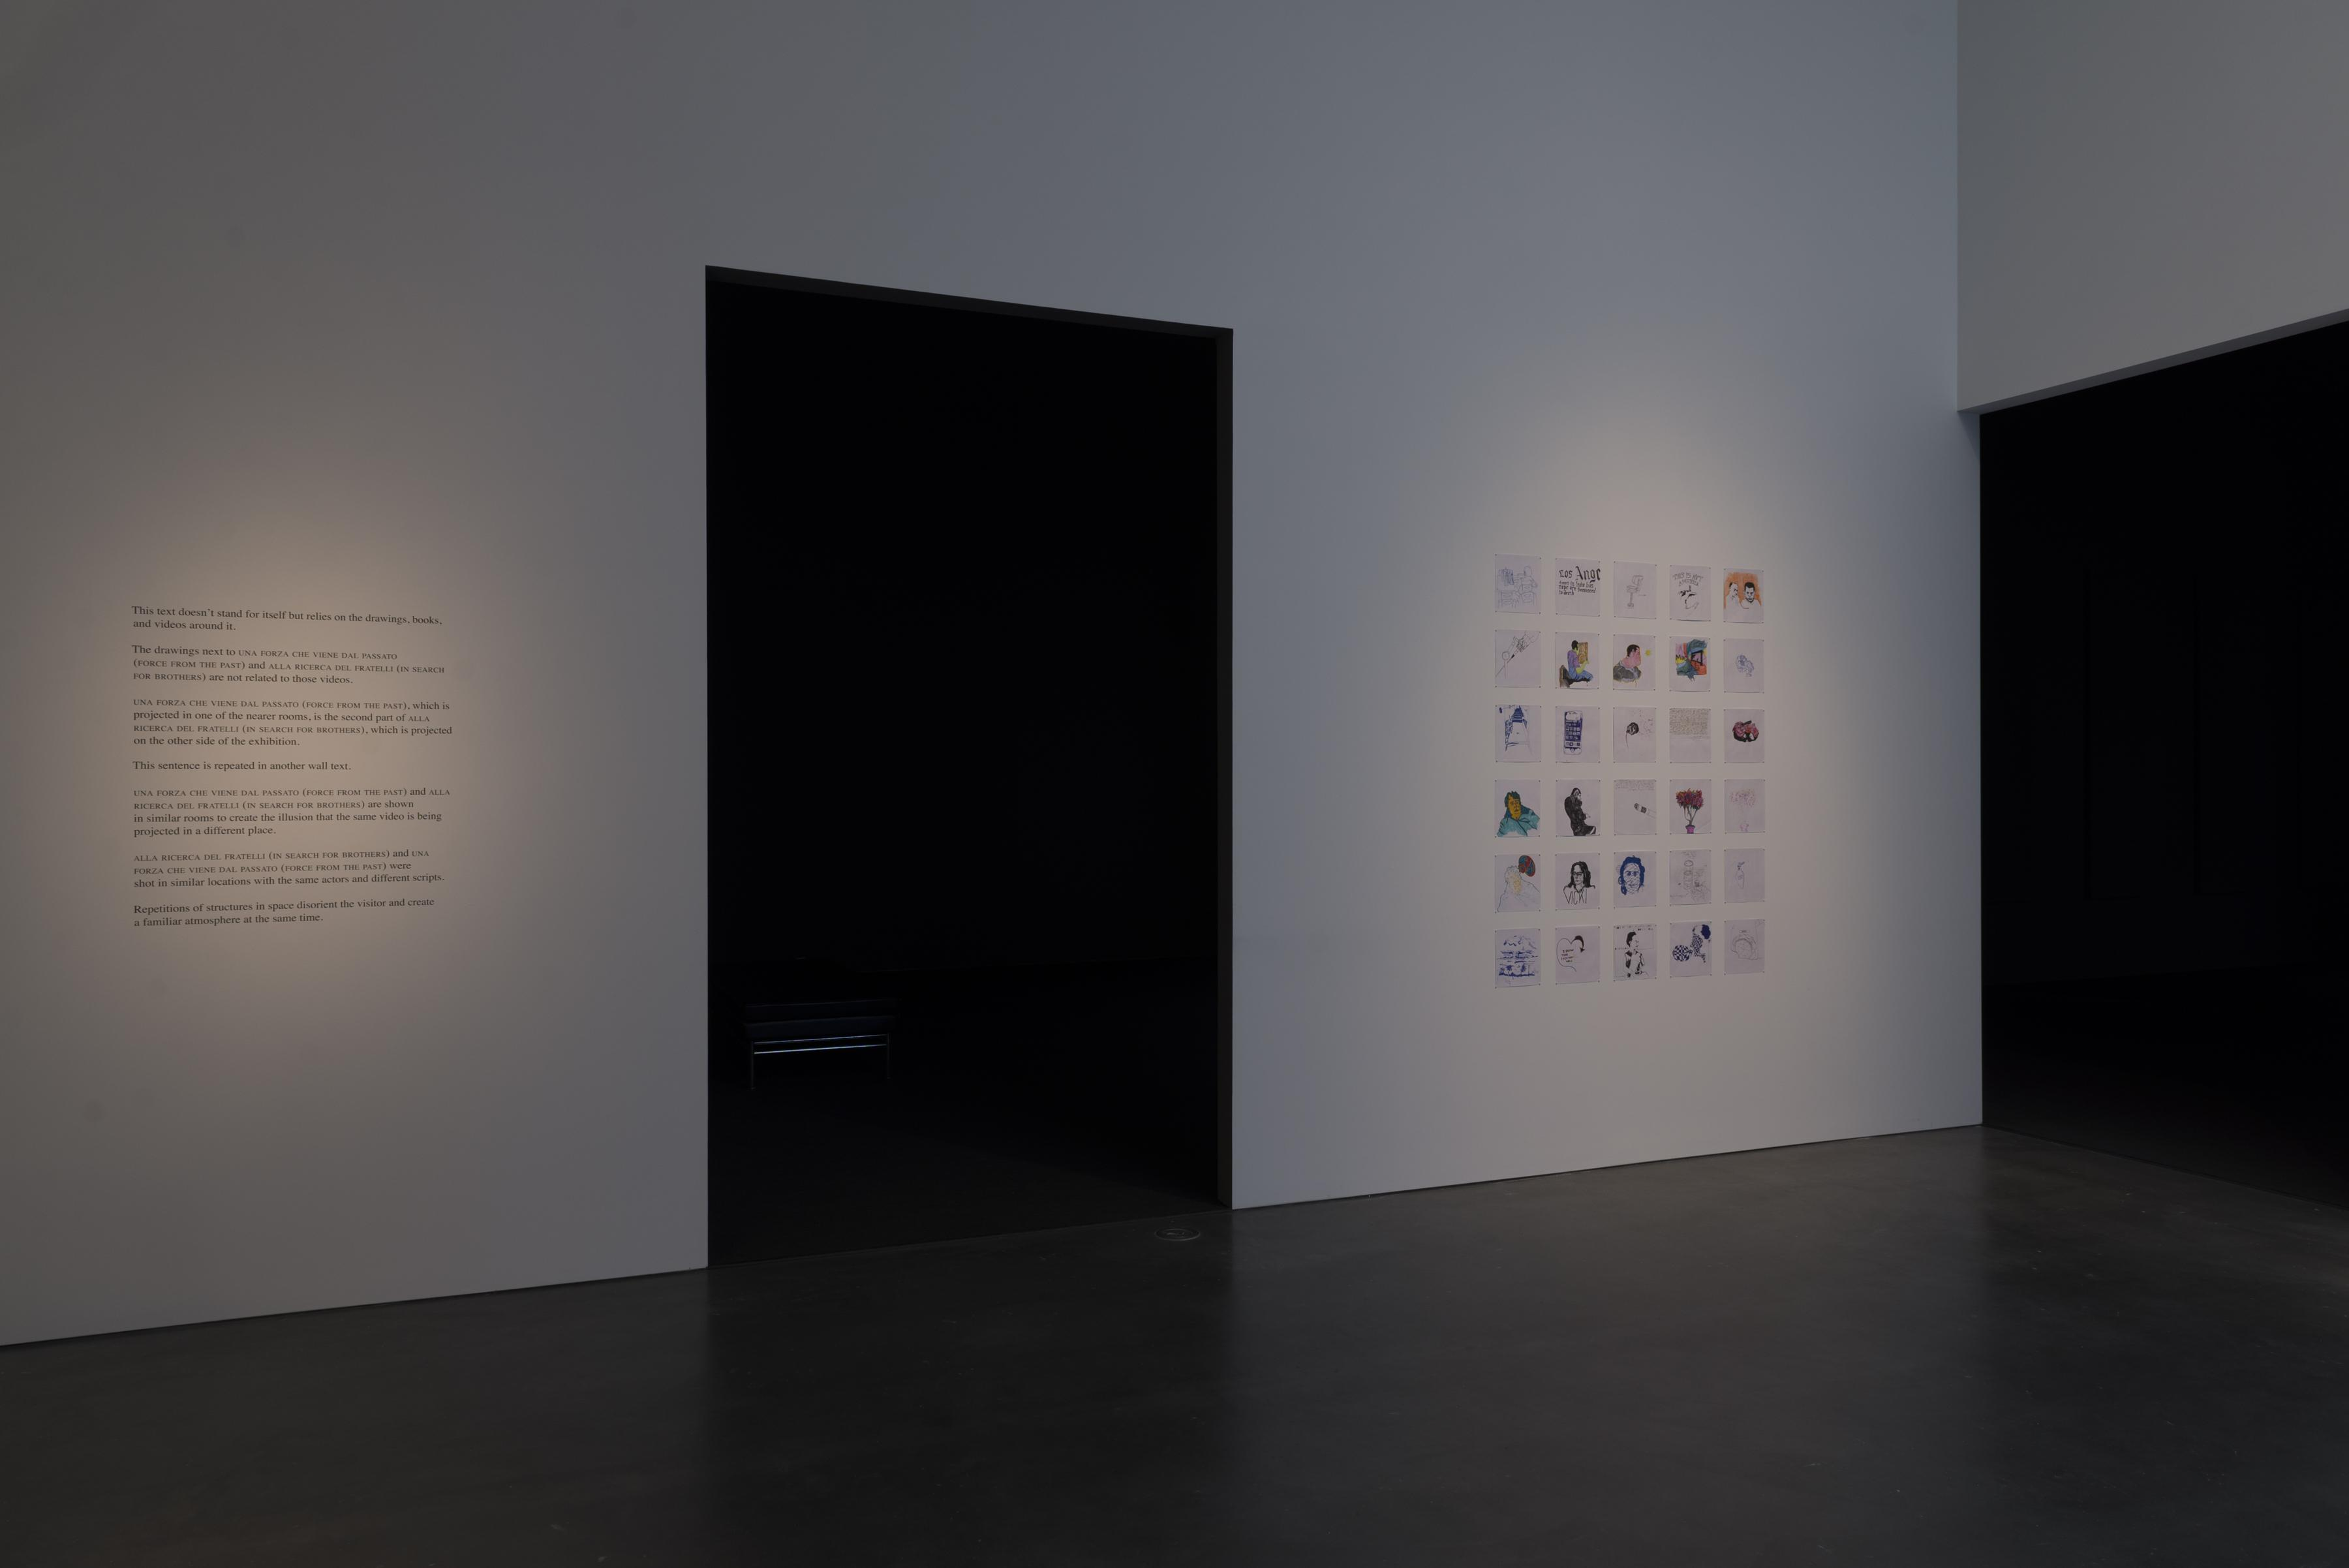 A four-by-six grid of square drawings on a wall between two large black doorways